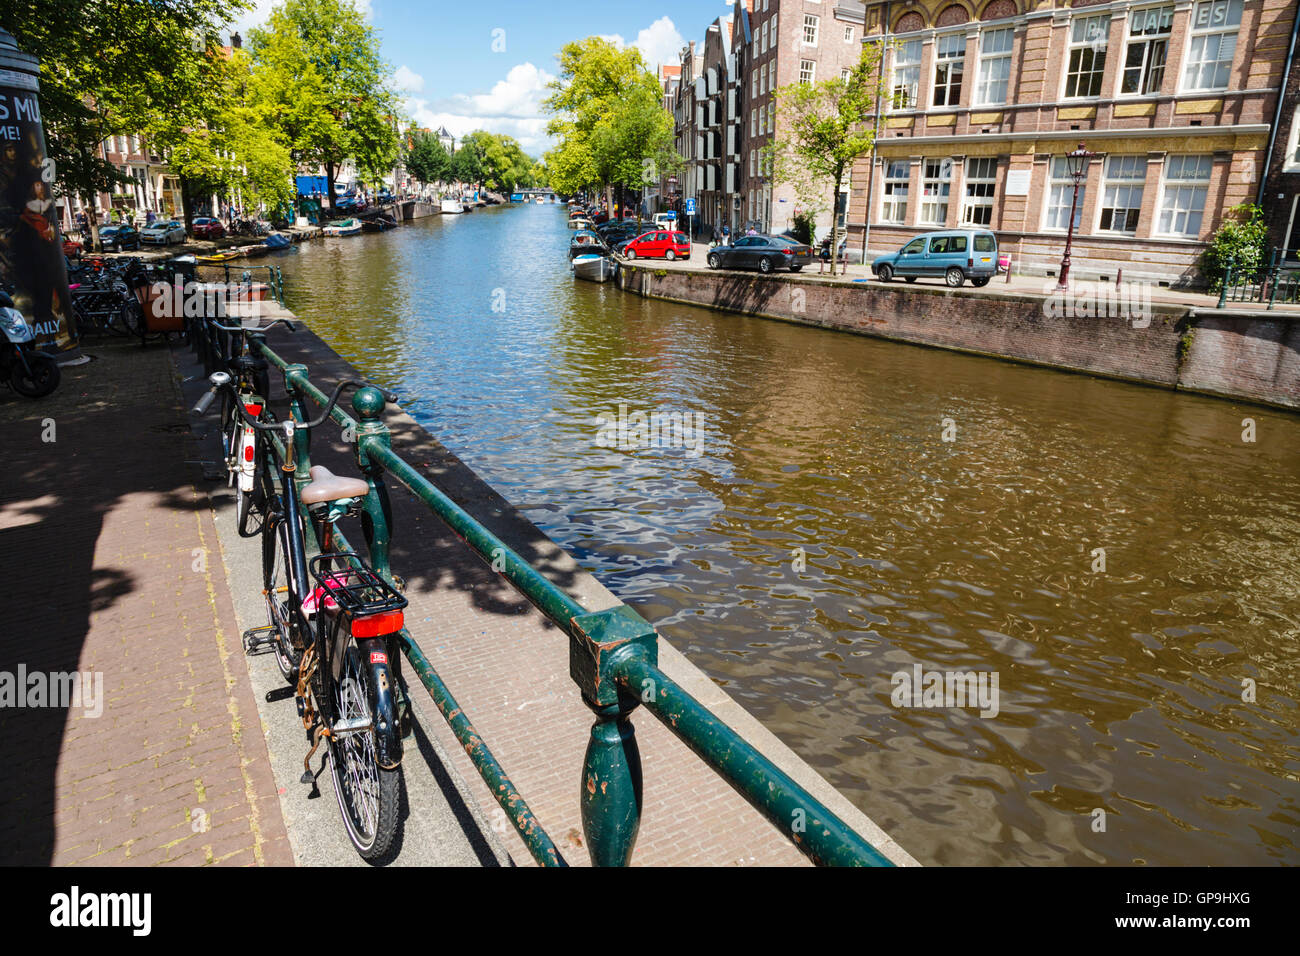 A view along the Prinsengracht canal Amsterdam Holland Netherlands - Stock Image